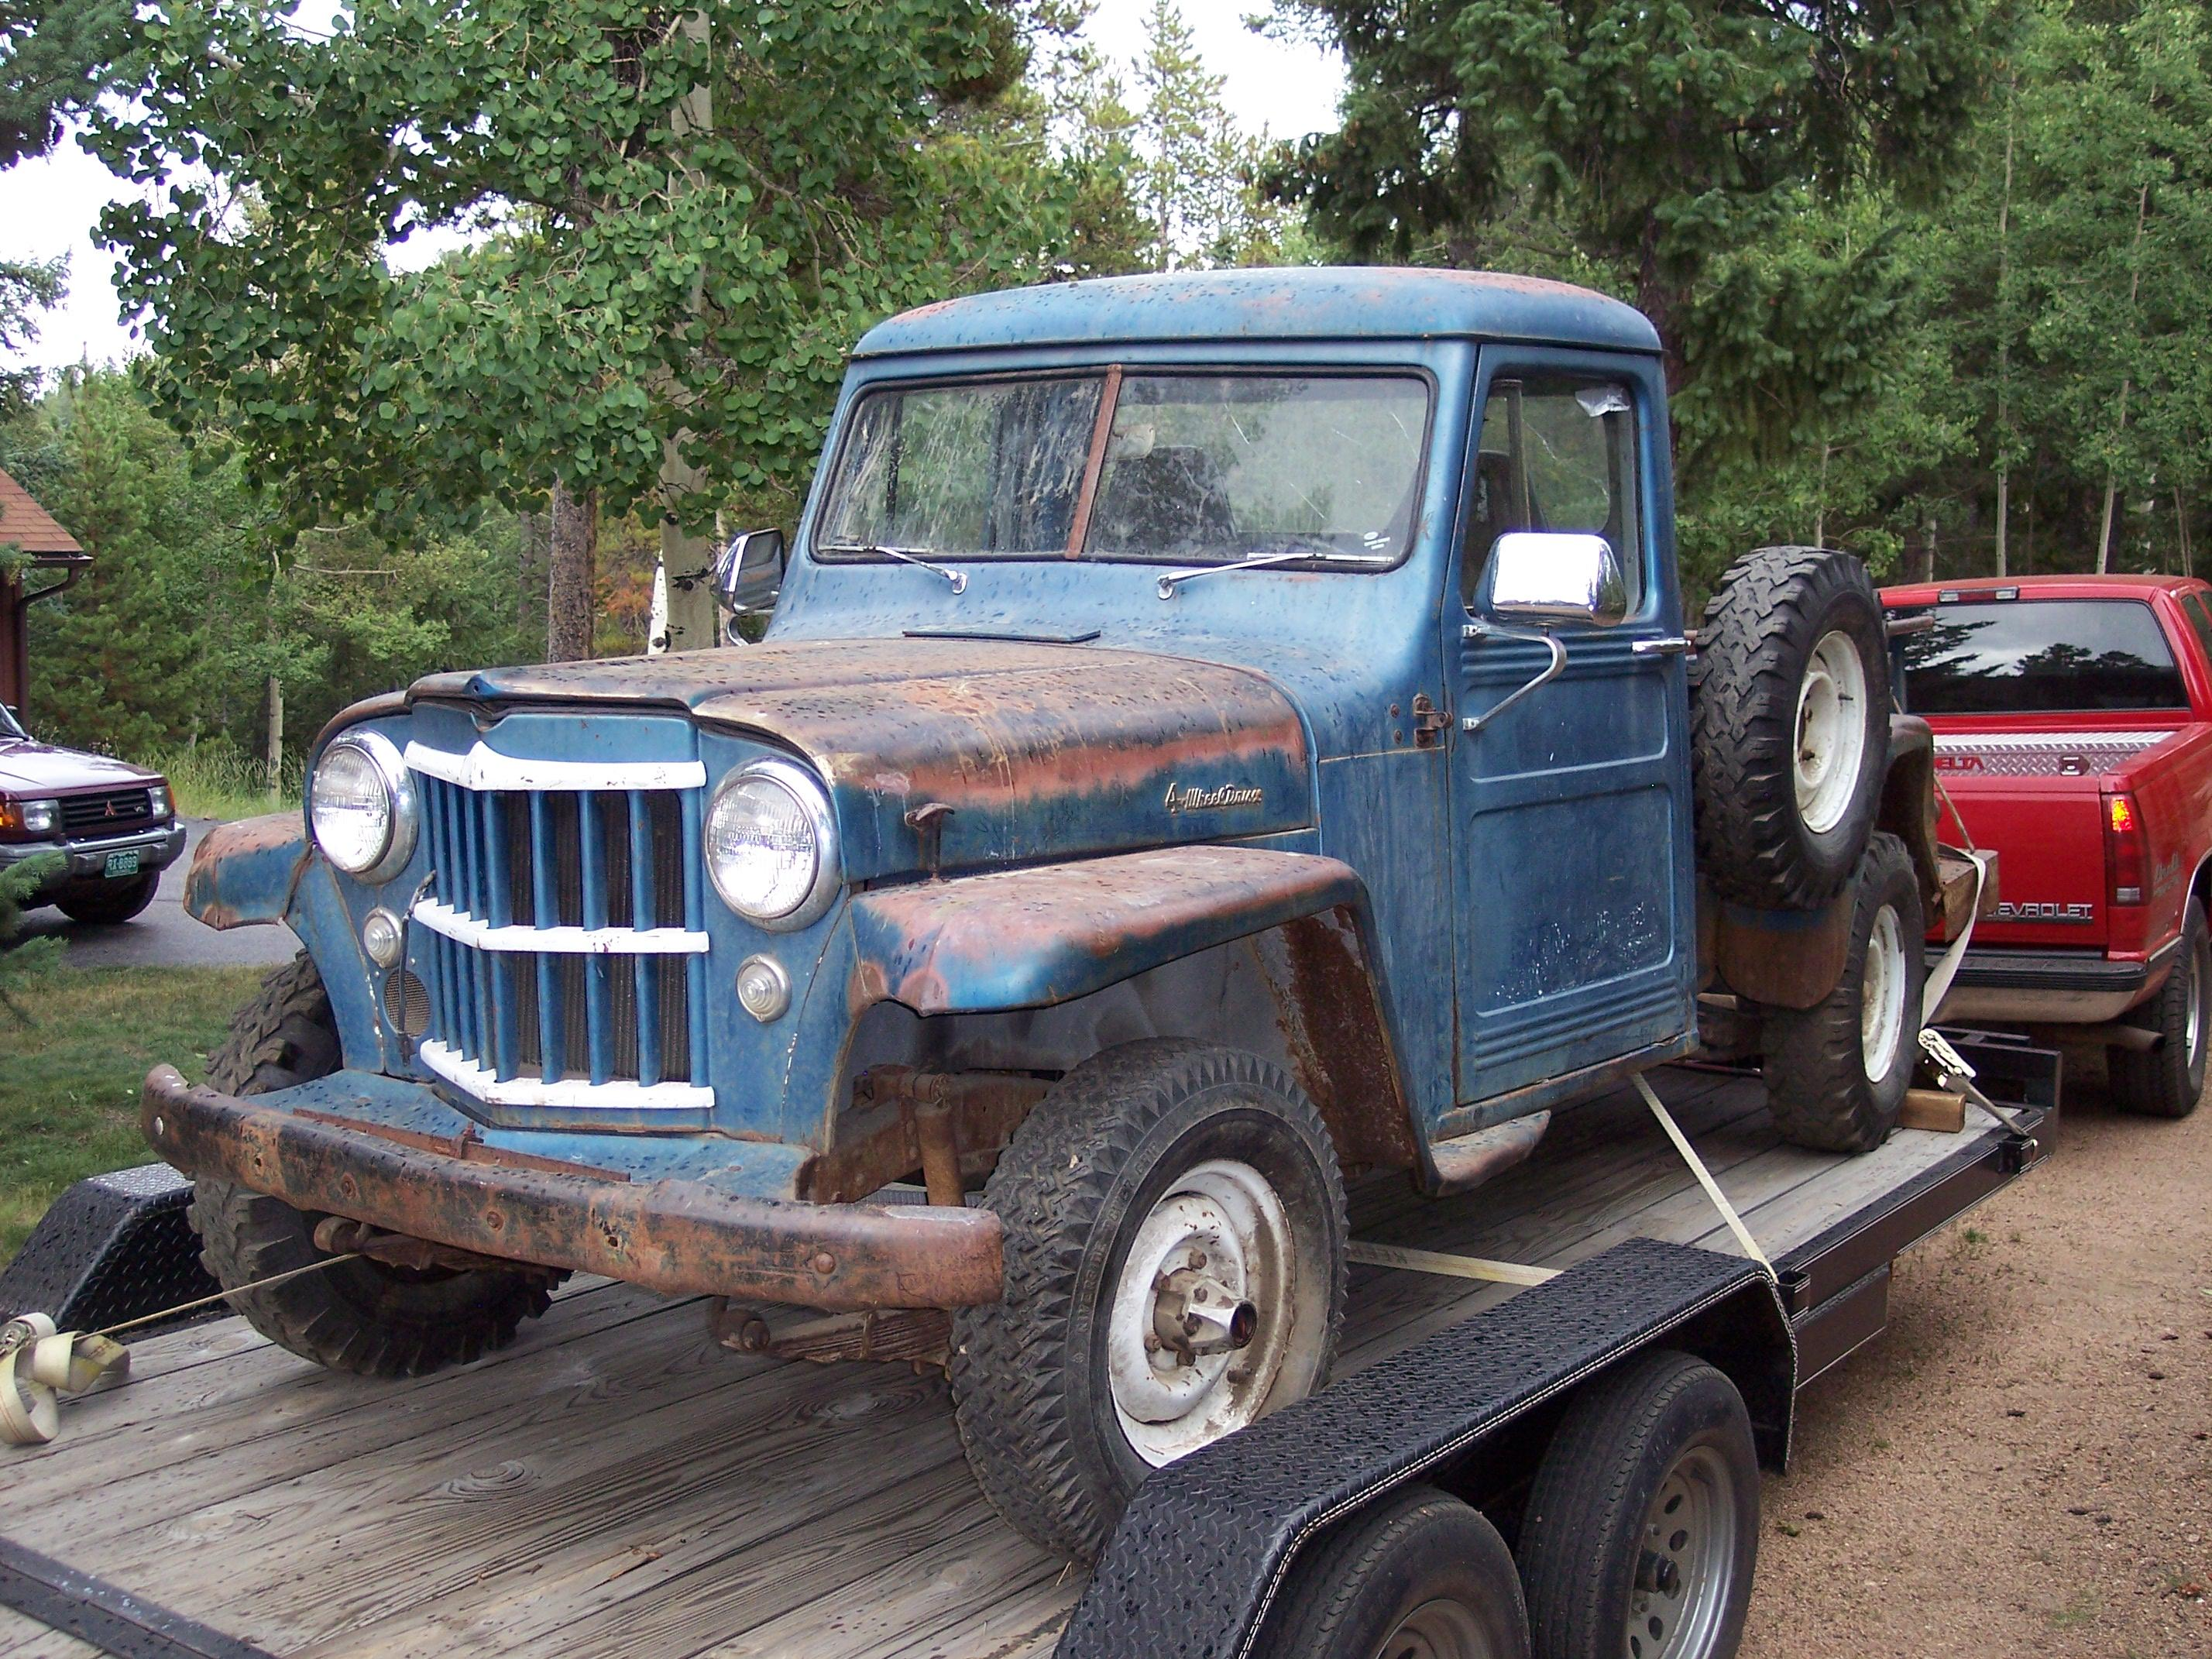 Pivnic 1957 Willys Pickup